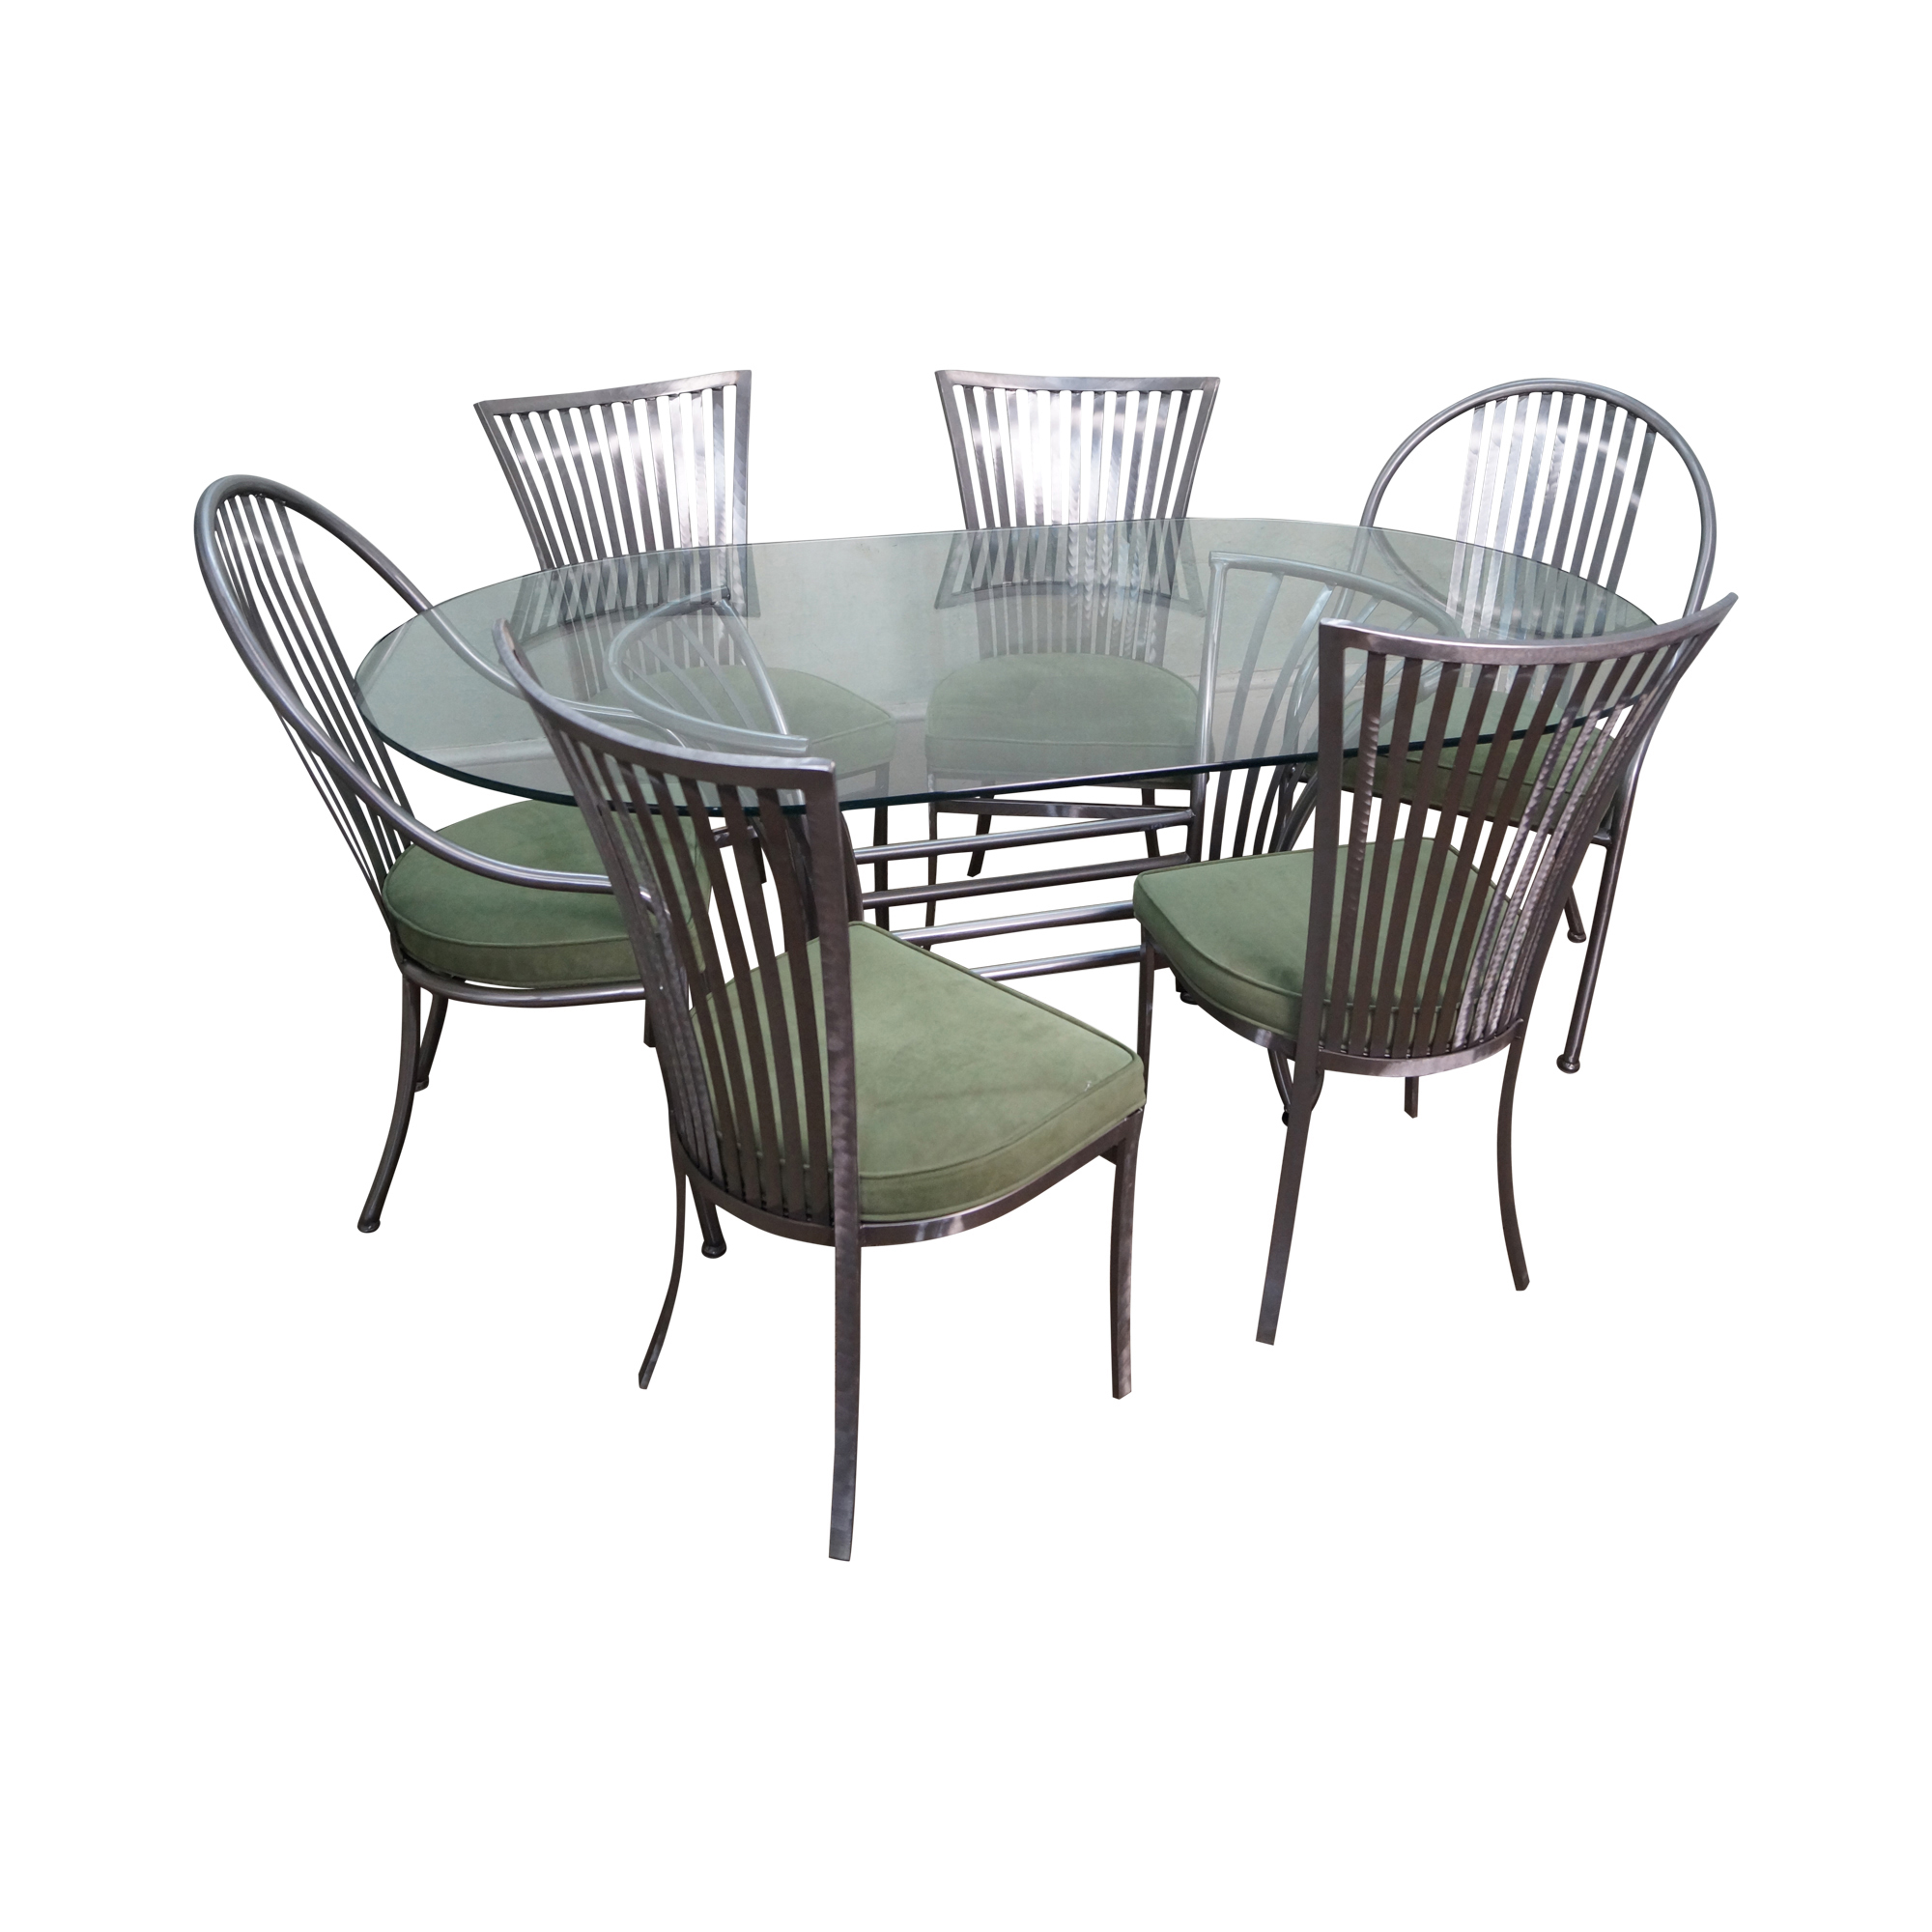 Shaver Howard Steel Dining Set Chairish